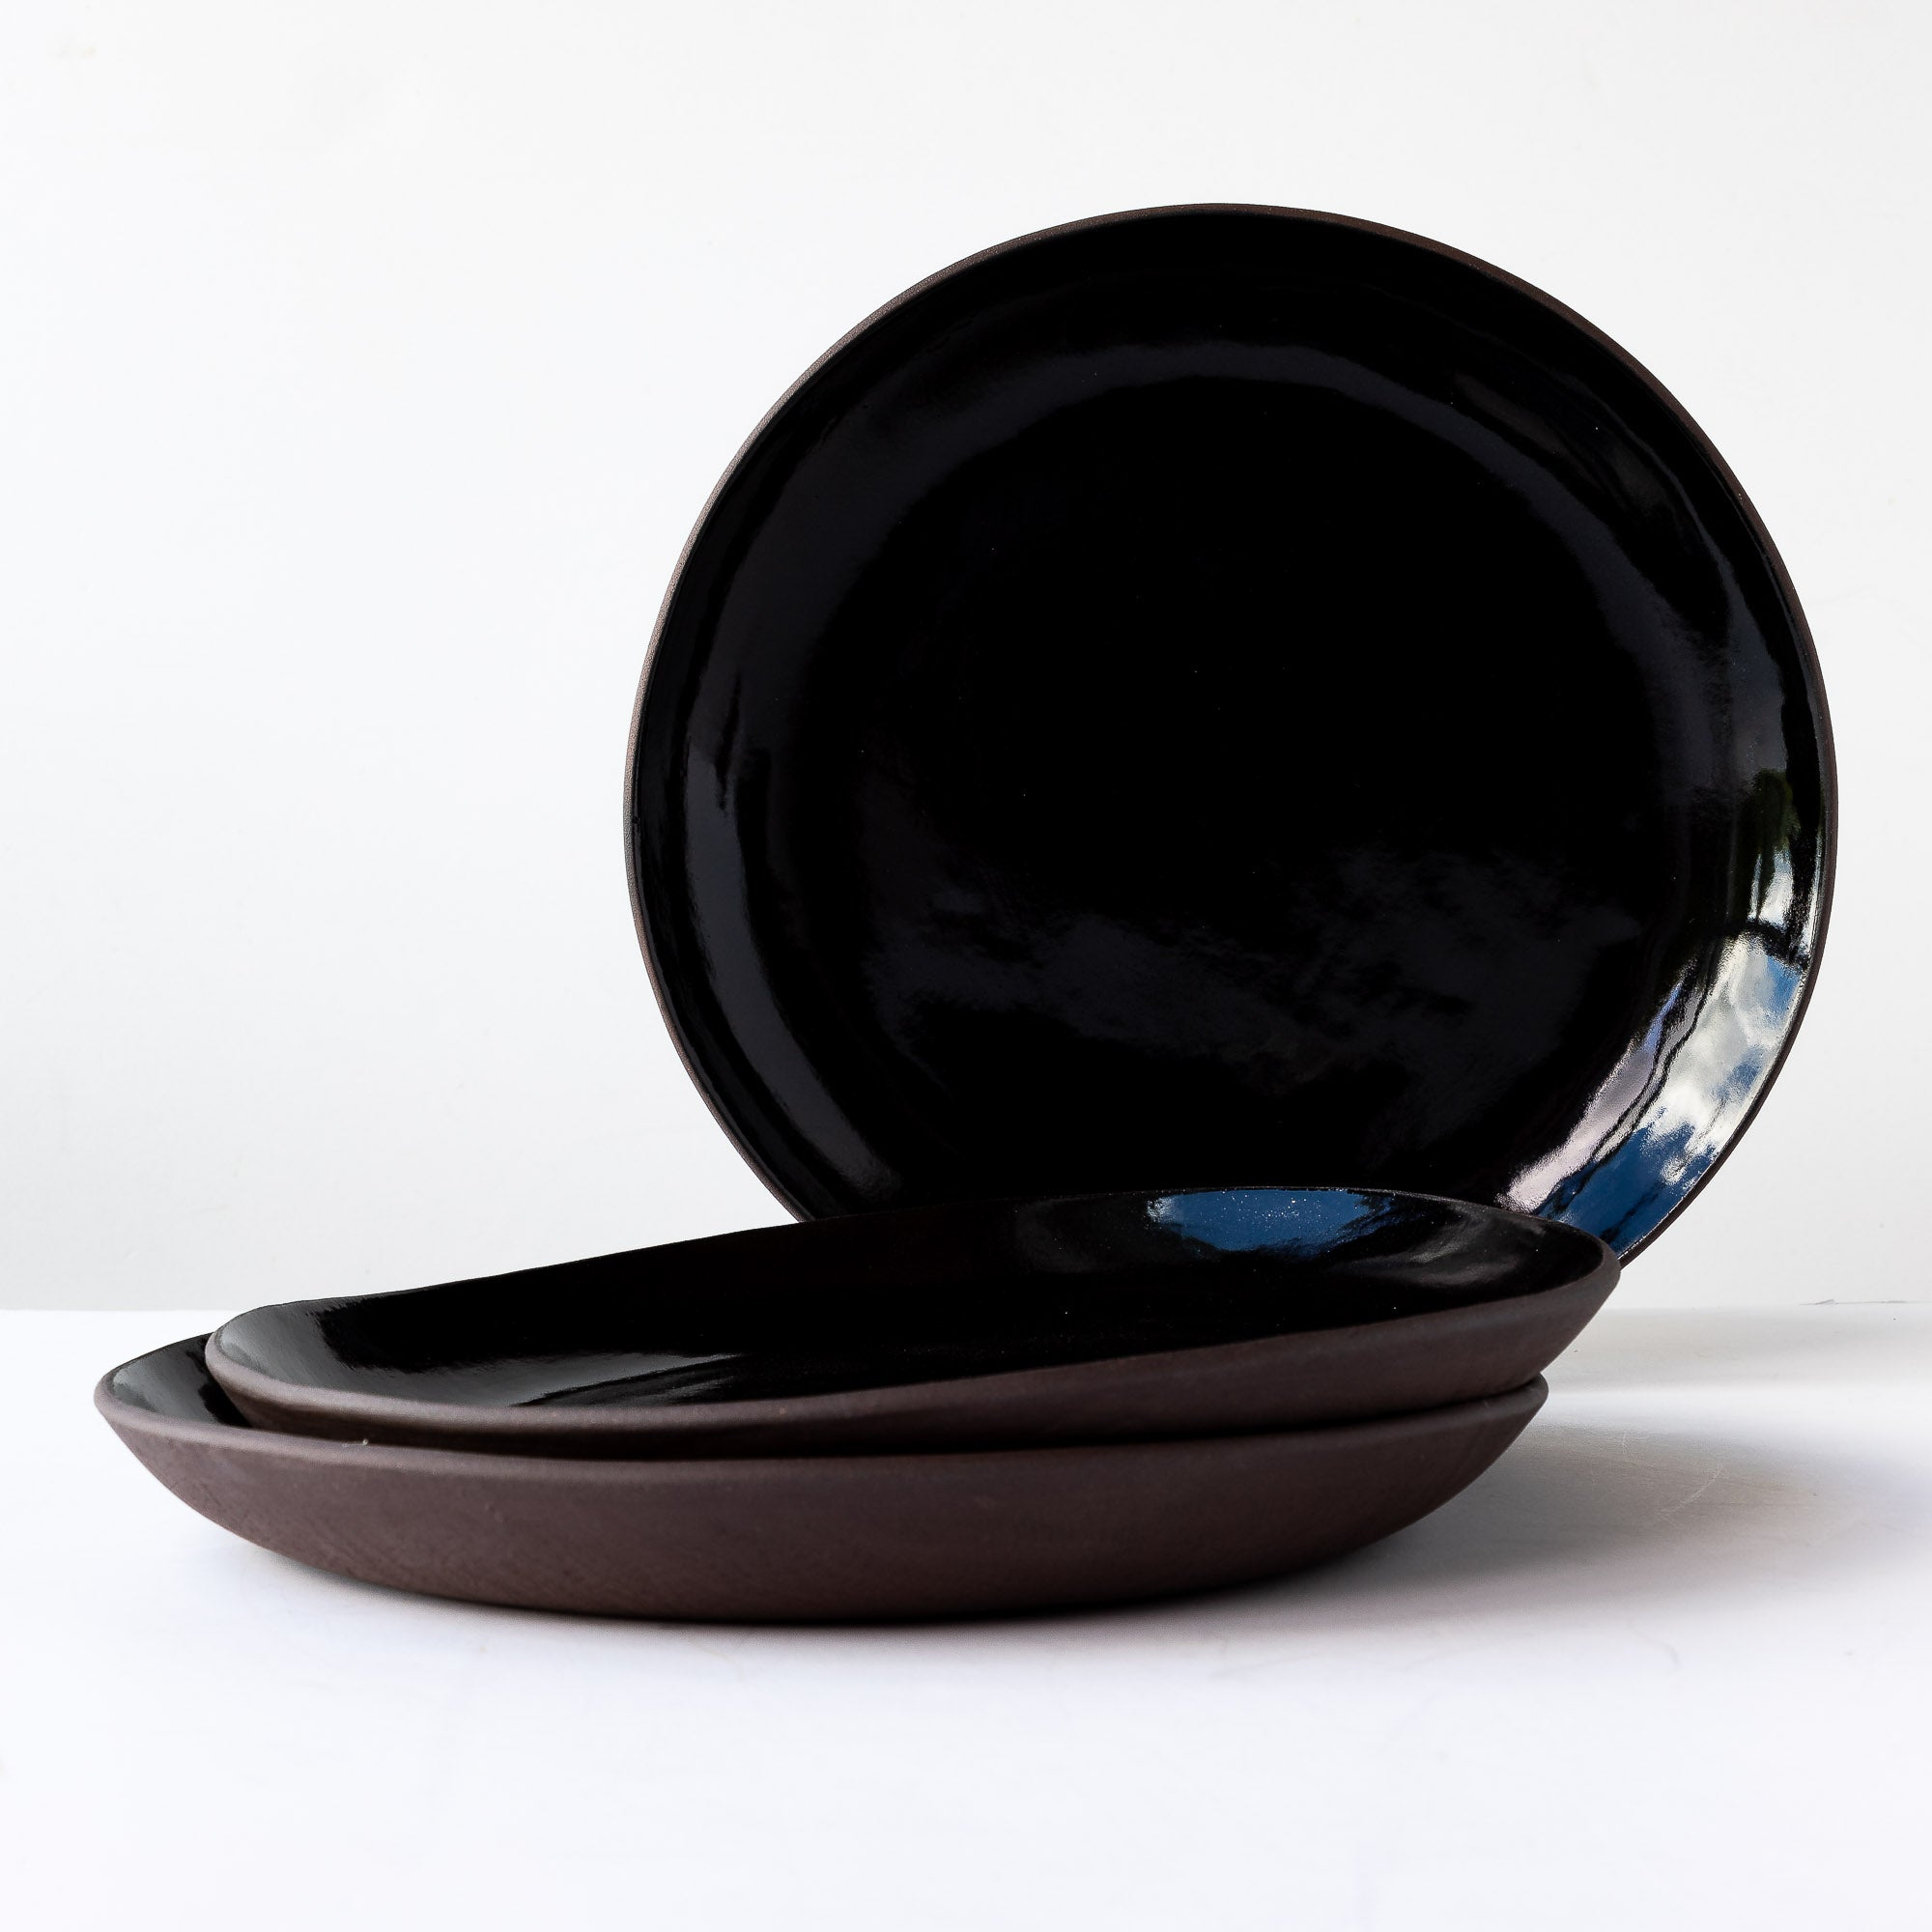 Handmade Large Plate in Black Lacquered Stoneware - Sold by Chic & Basta